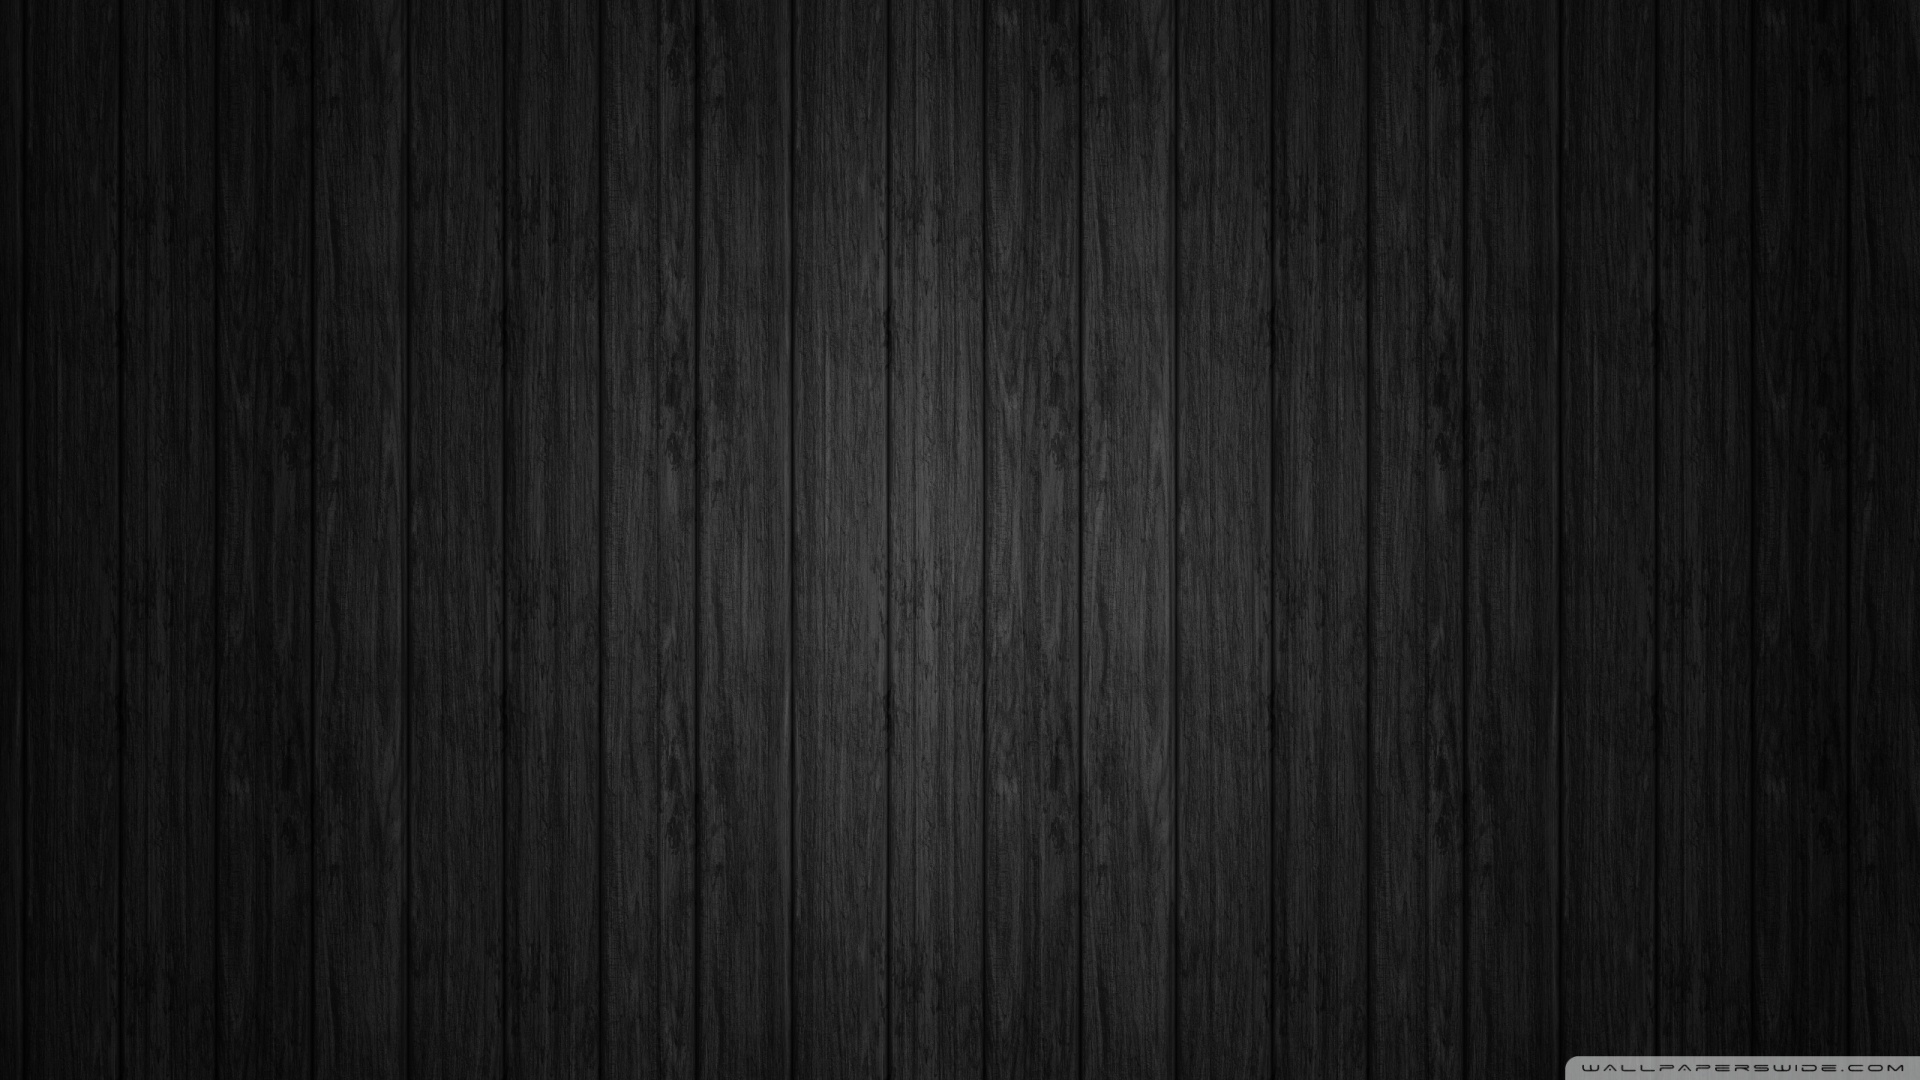 Black Wallpaper 1920x1080 - WallpaperSafari